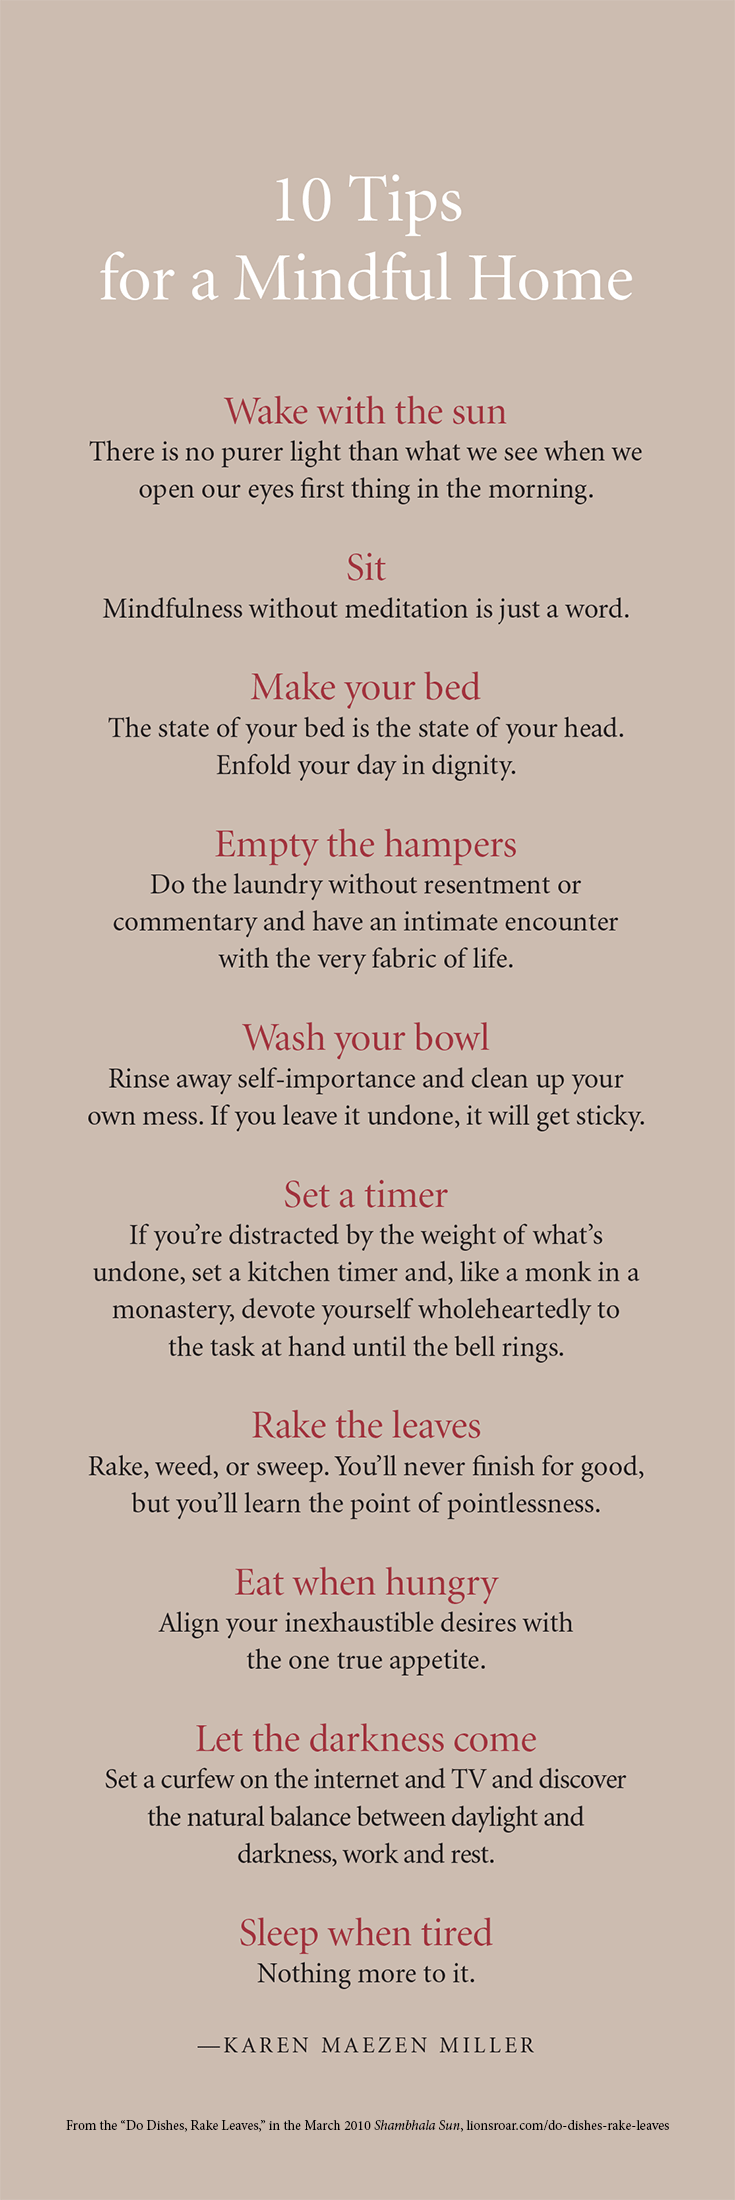 10-tips-mindful-home.png